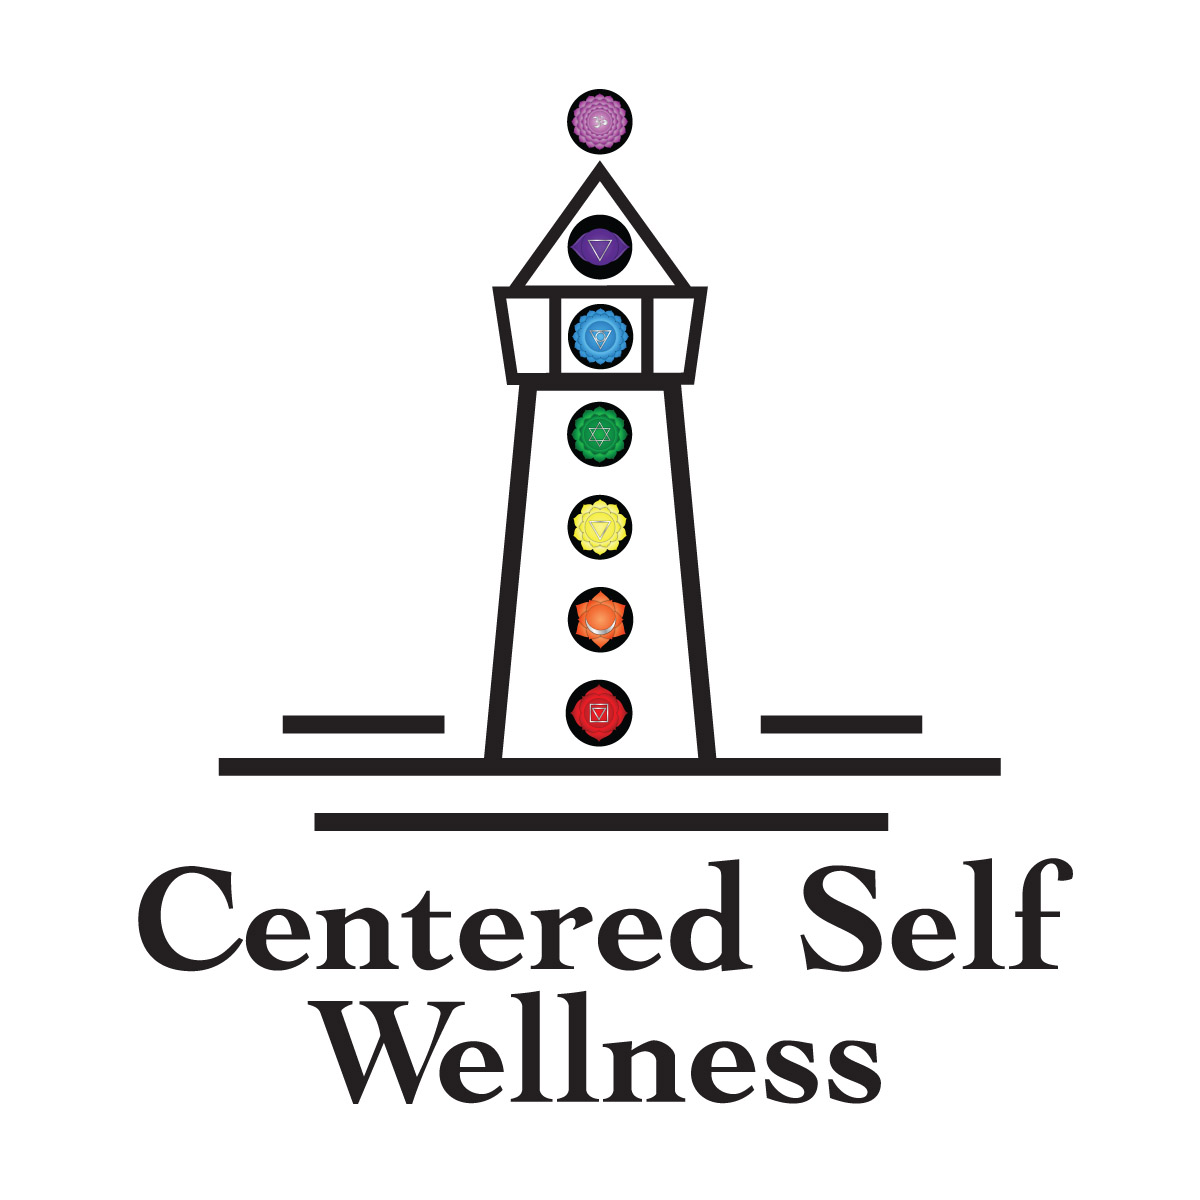 Centered Self Wellness